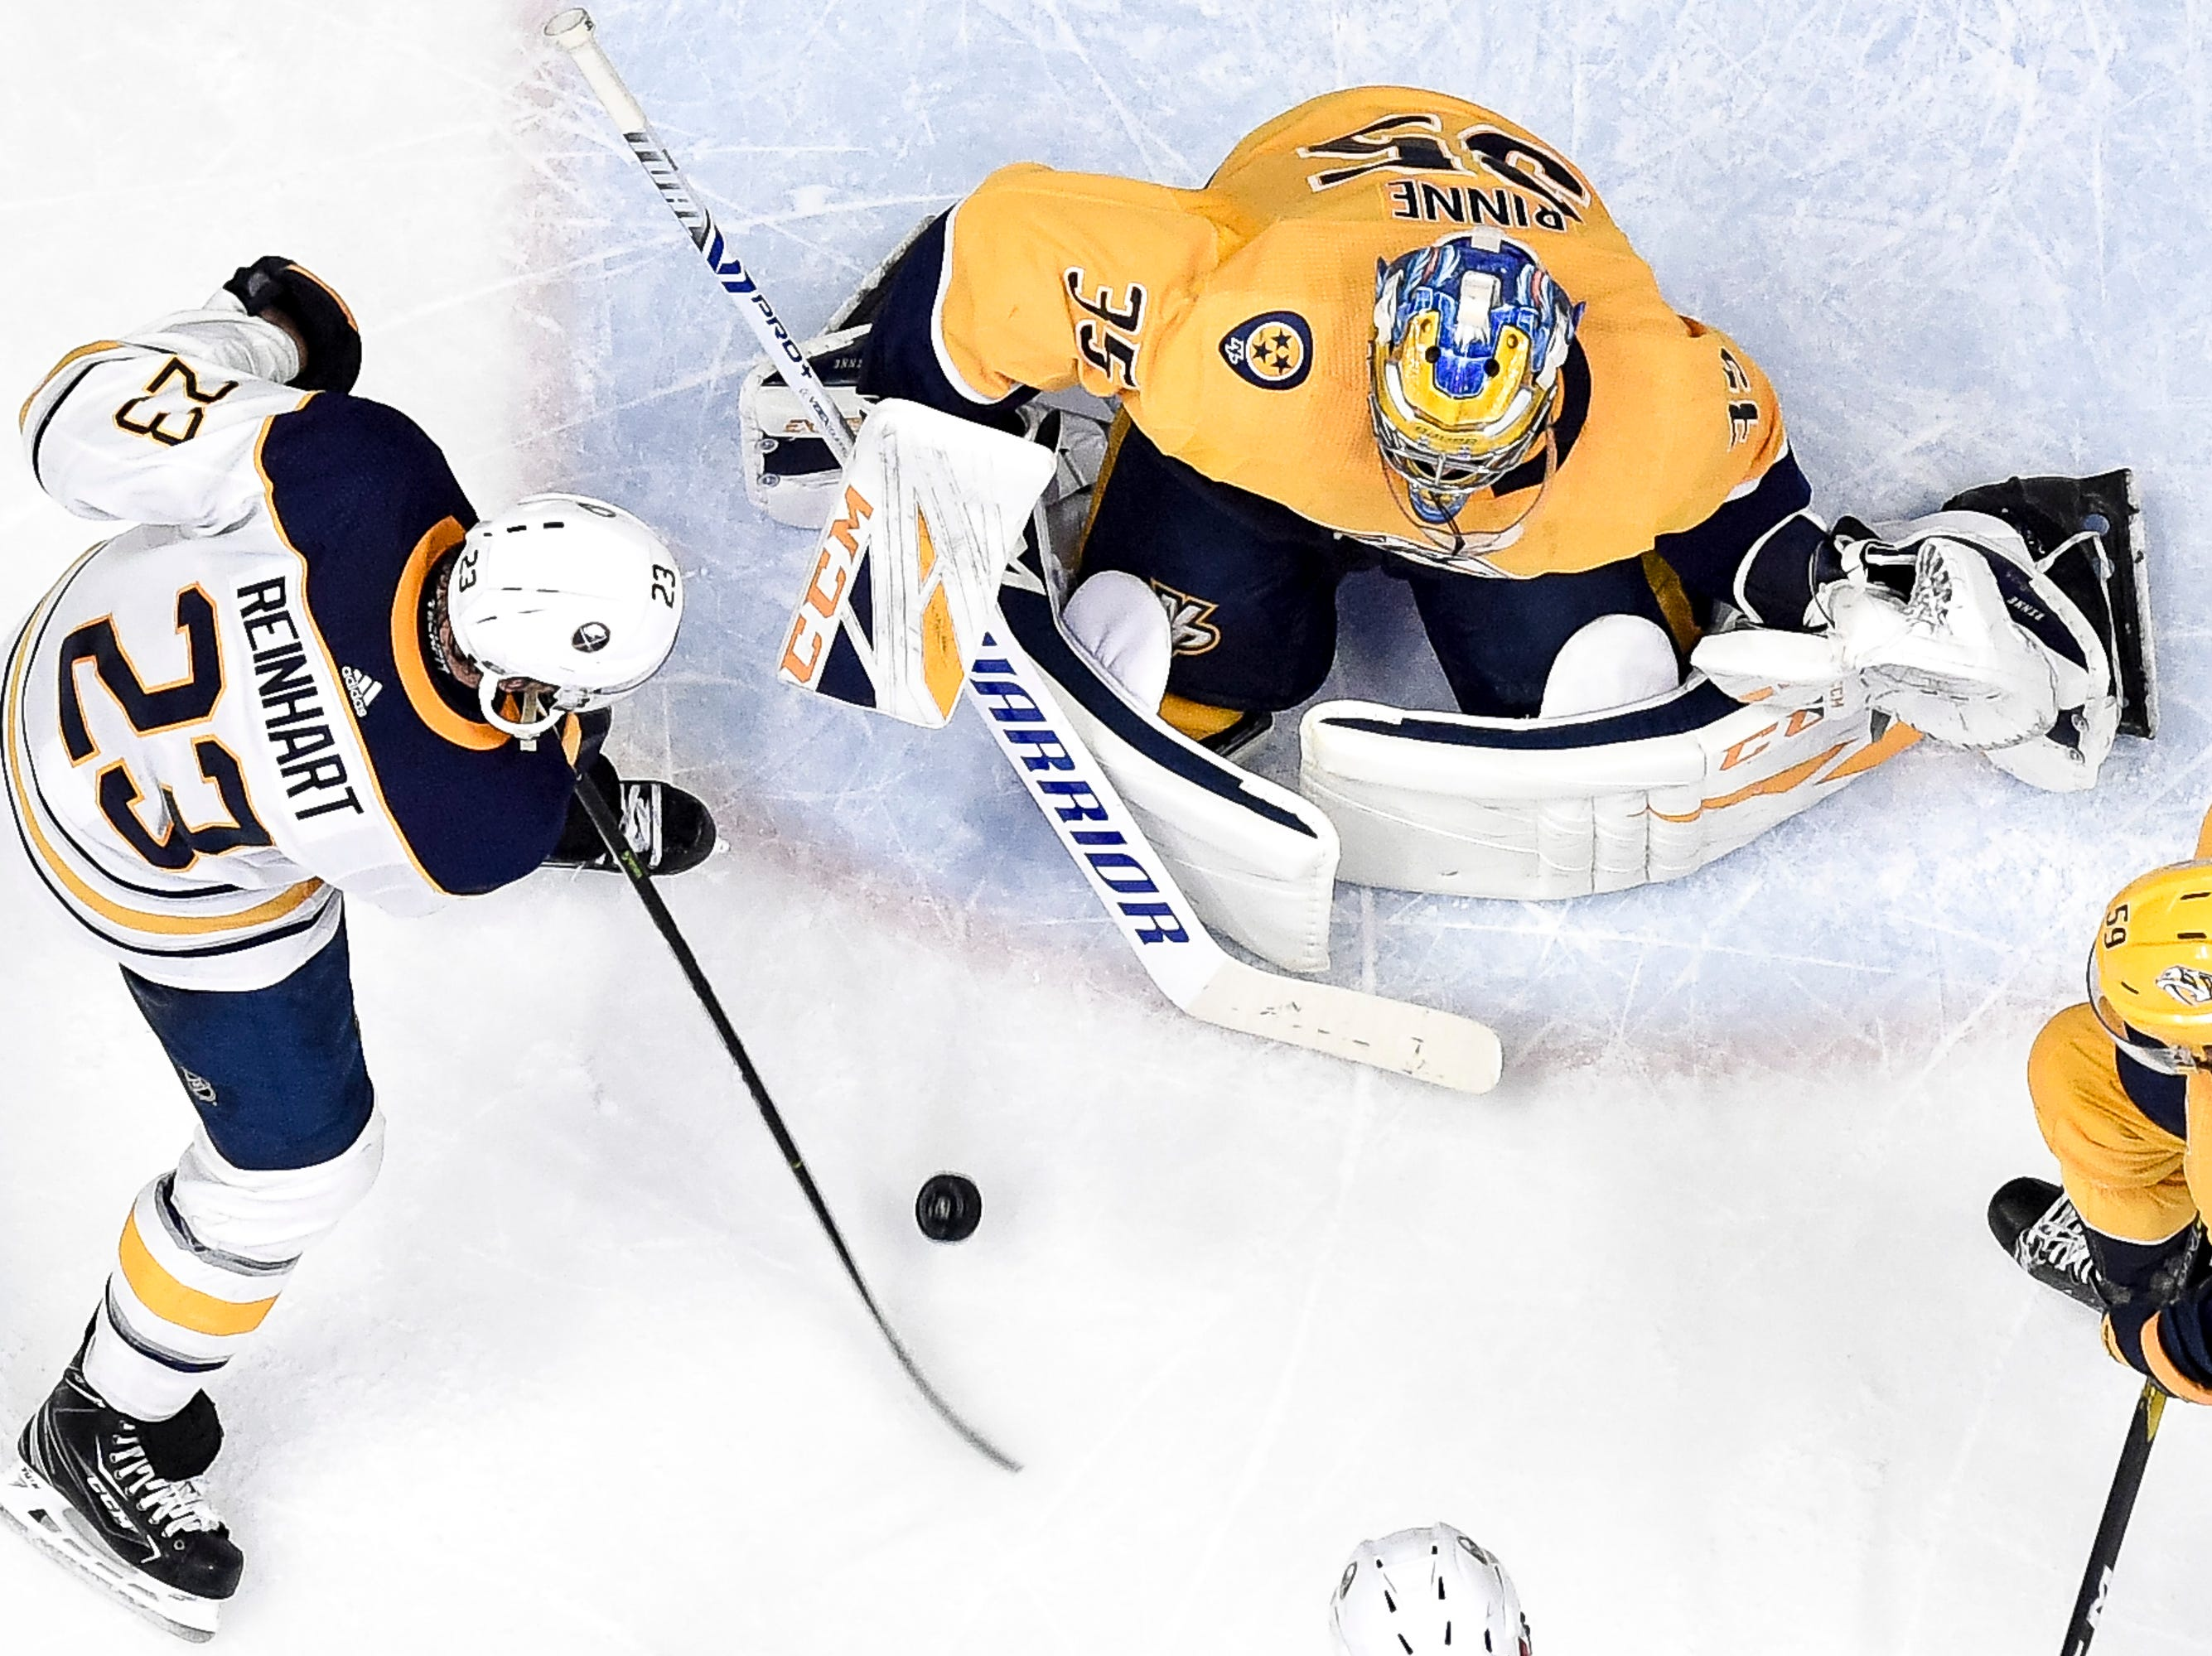 Nashville Predators goaltender Pekka Rinne (35) defends against Buffalo Sabres center Sam Reinhart (23) during the third period at Bridgestone Arena in Nashville, Tenn., Monday, Dec. 3, 2018.